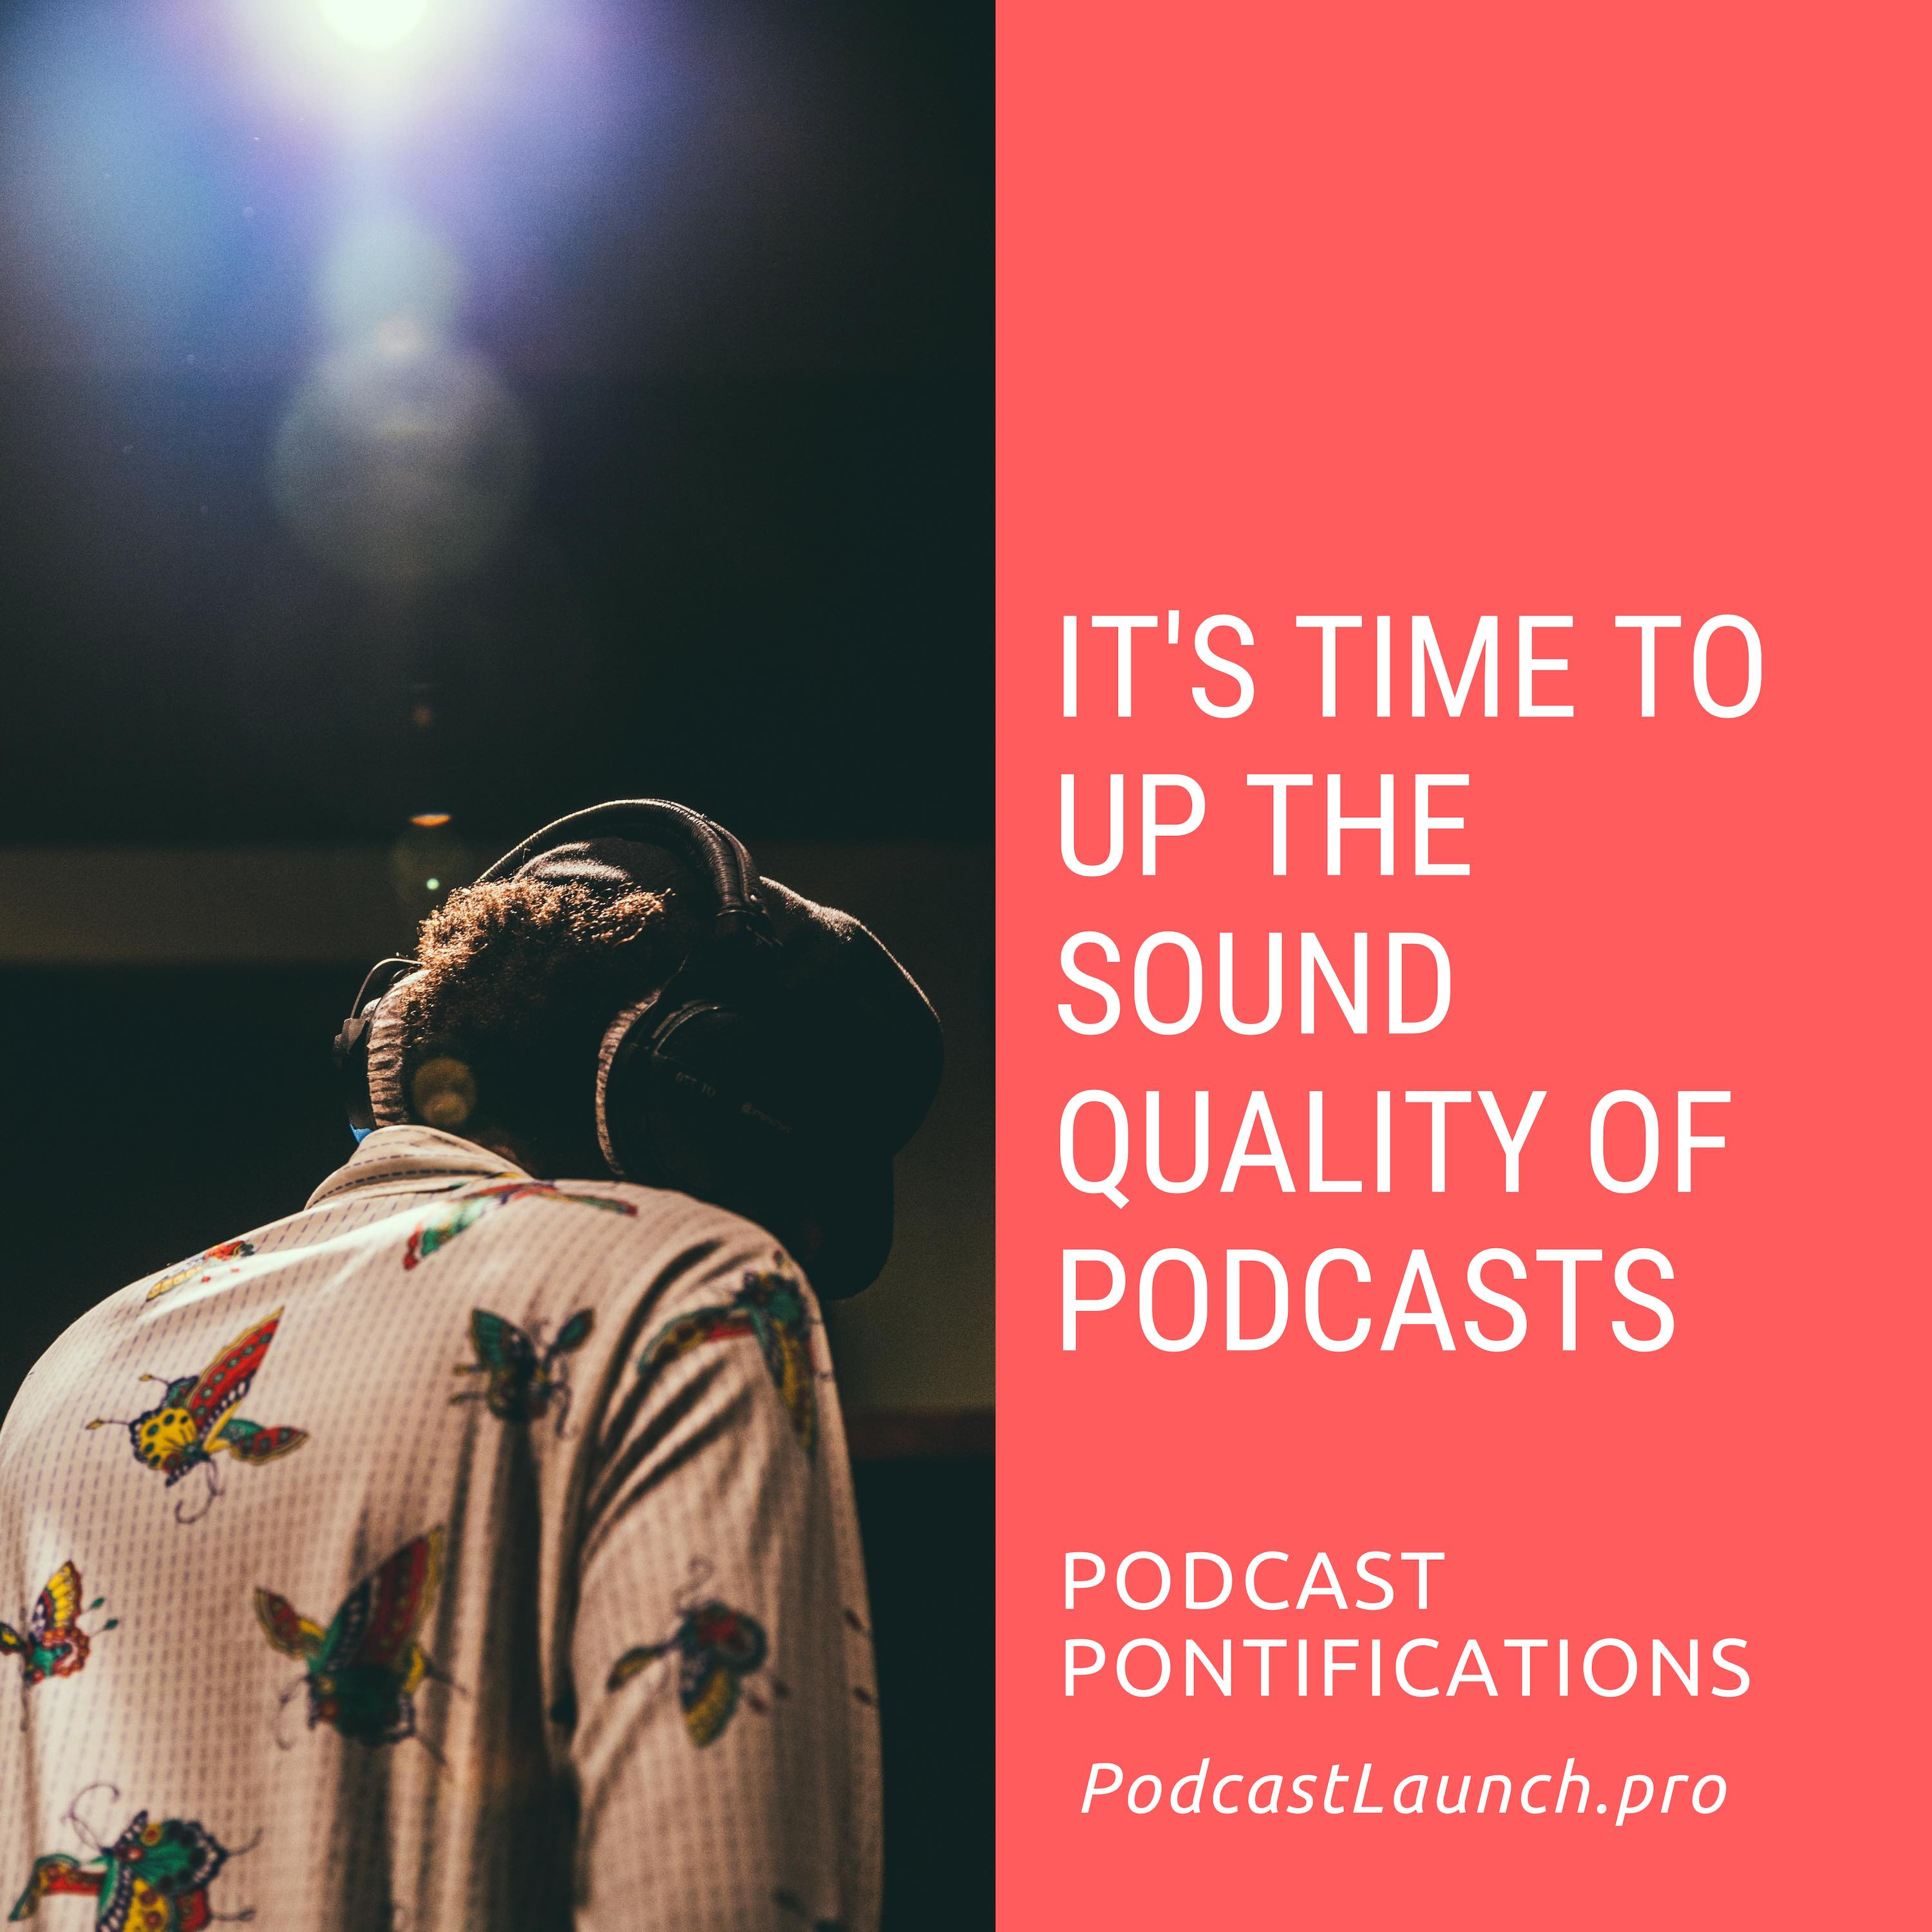 Upping The Sound Quality Of Podcasts